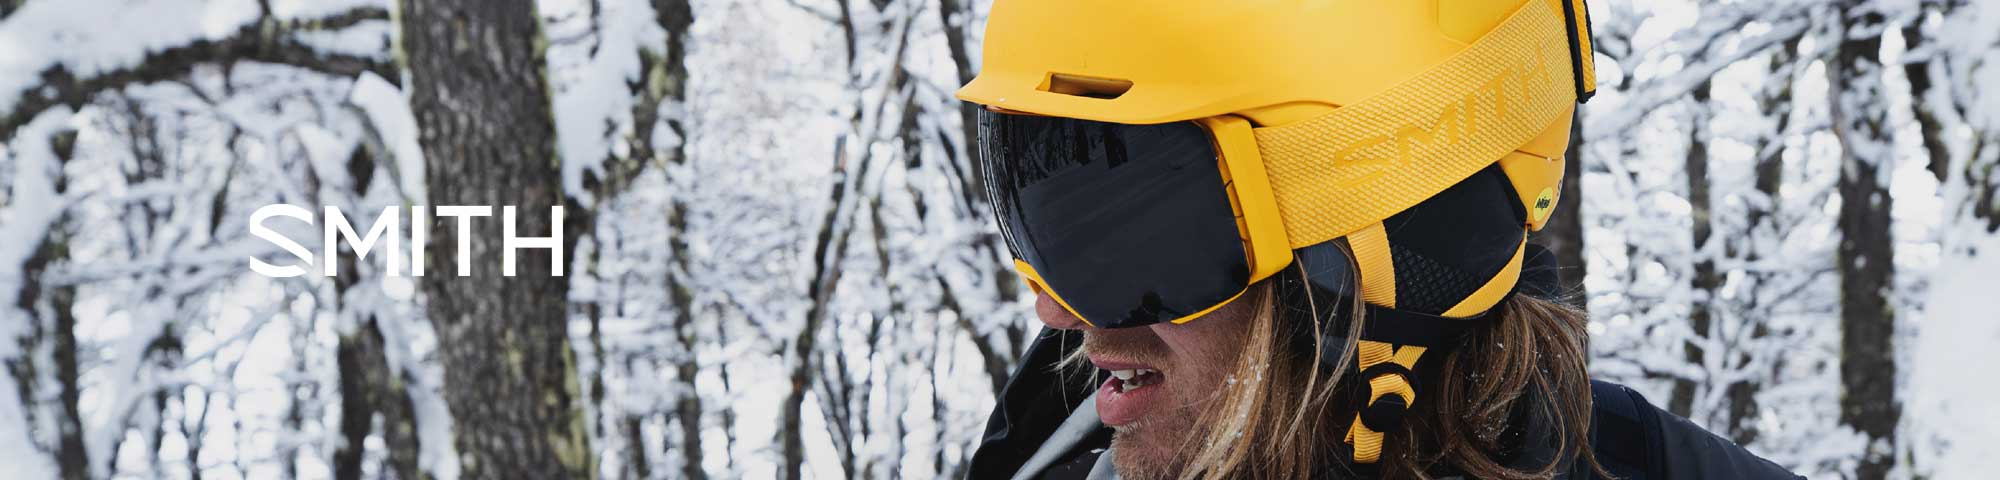 Smith Mirage MIPS Ski Helmet